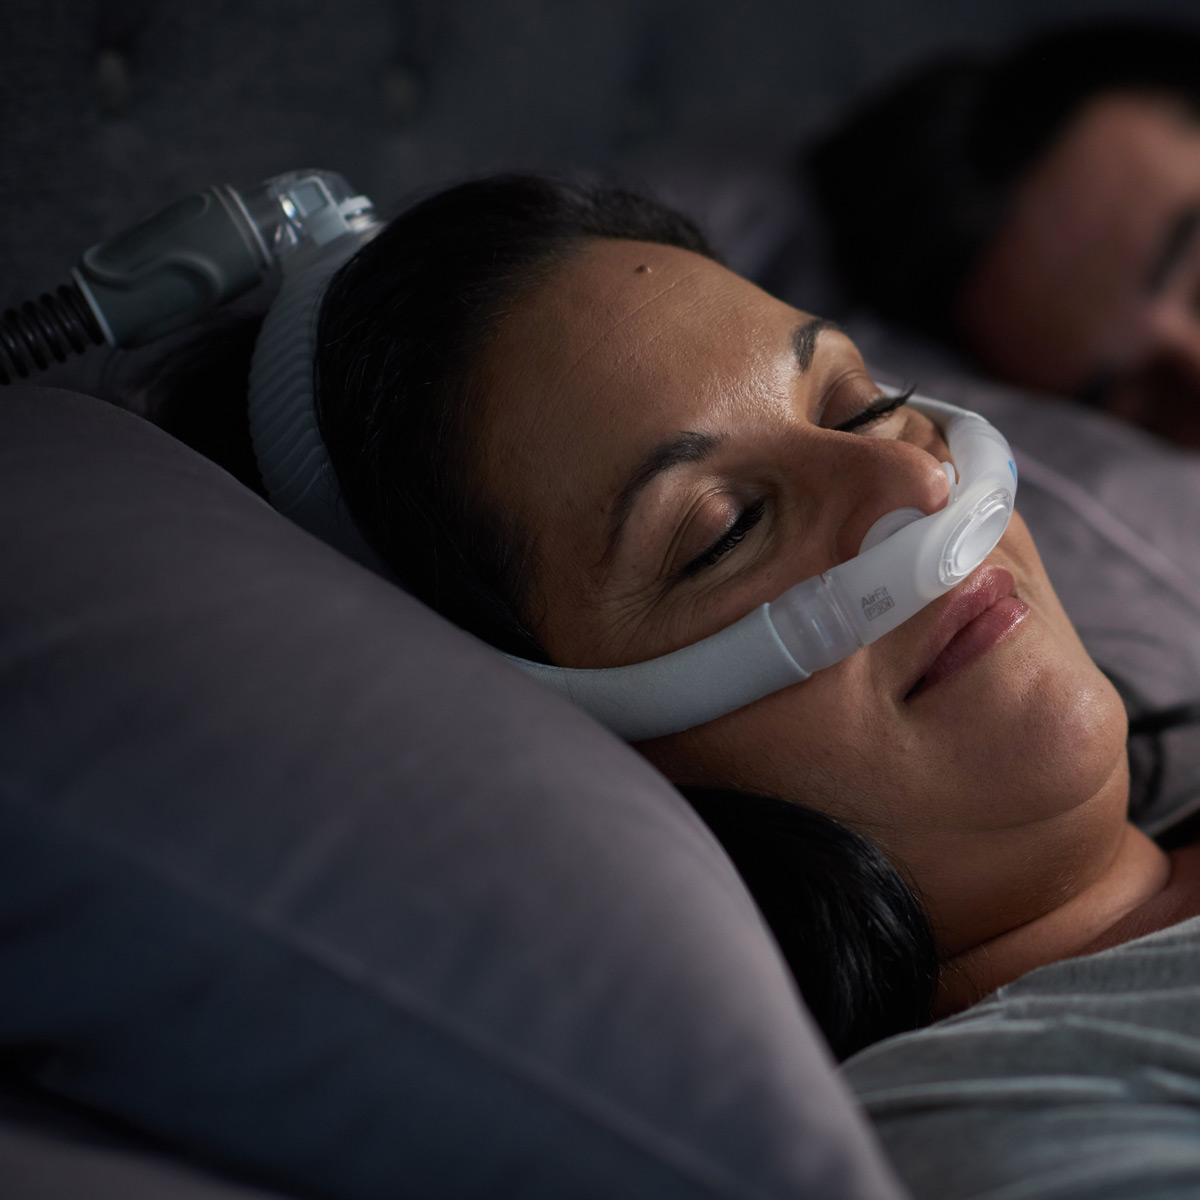 AirFit P30i Nasal Pillow CPAP/BiLevel Mask Starter Pack with Headgear